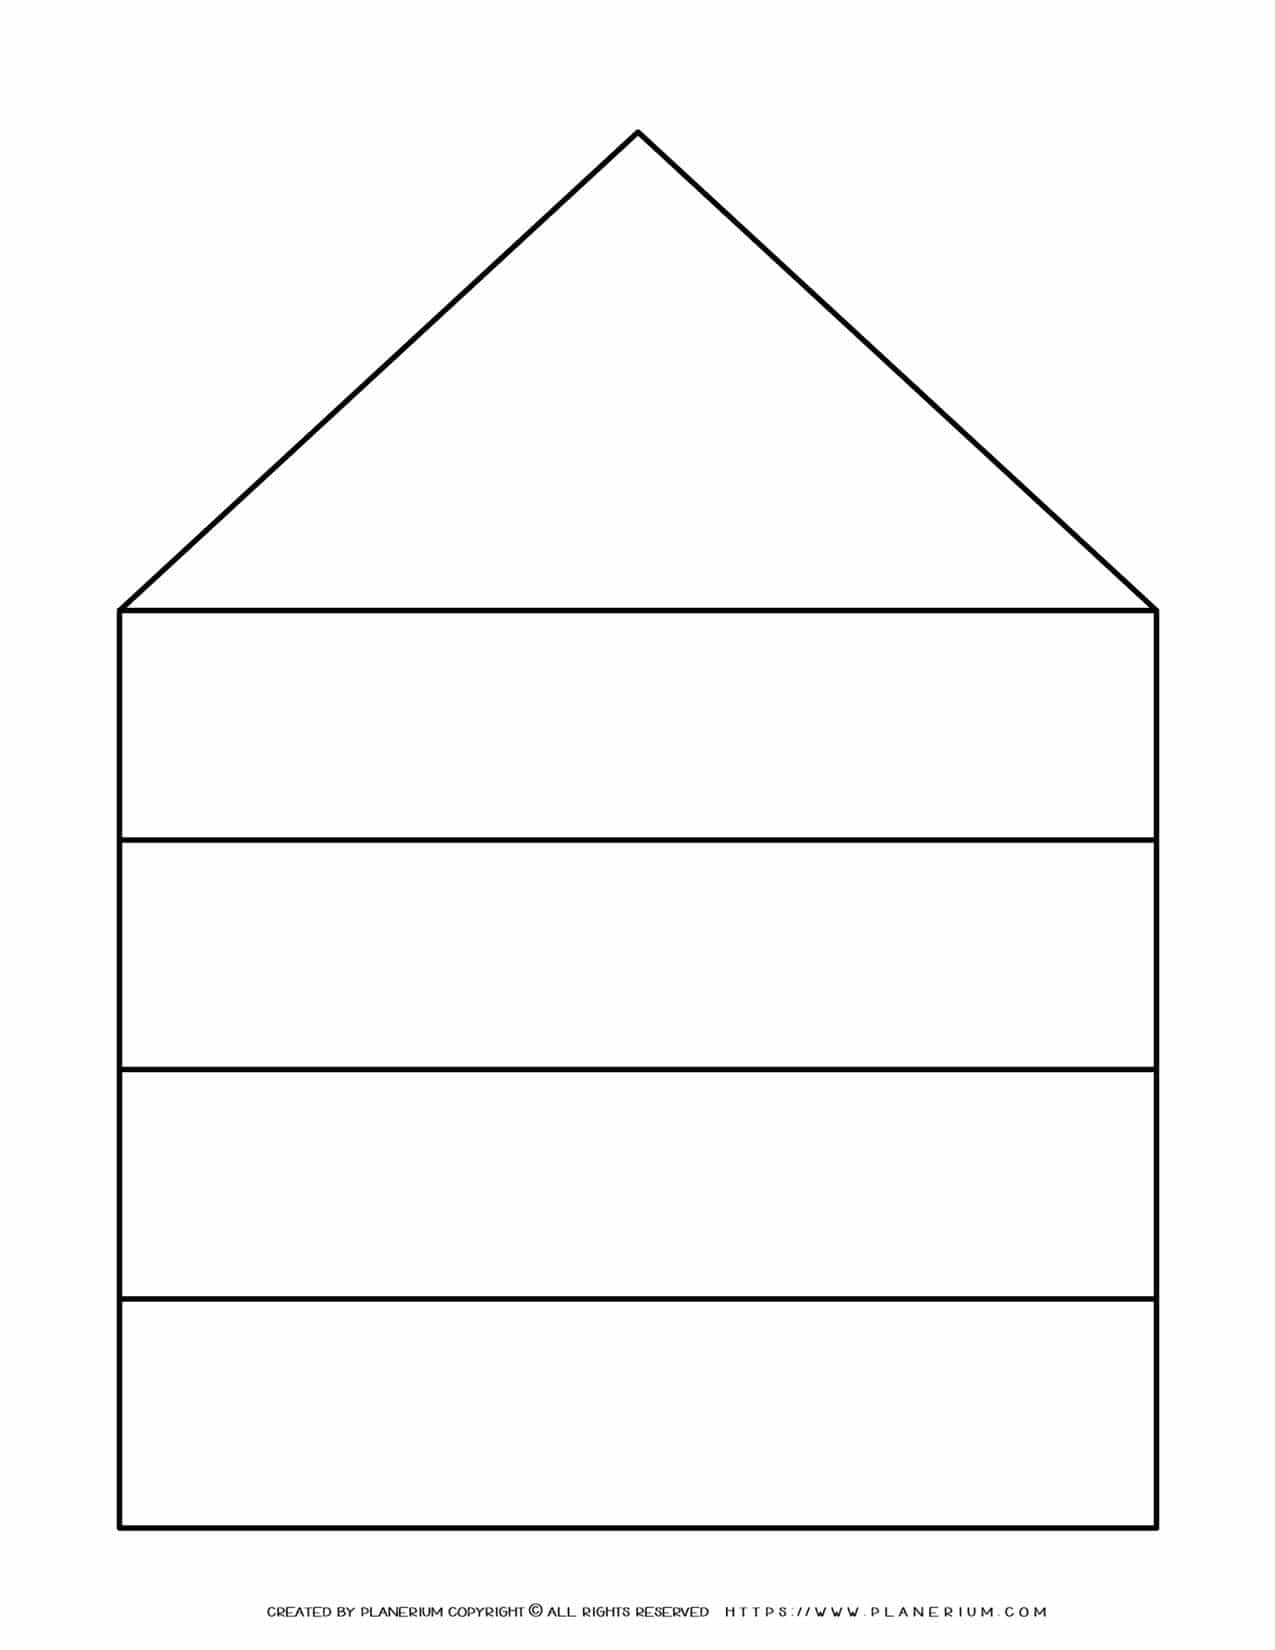 Graphic Organizer Templates - House Chart with Four Rows | Planerium